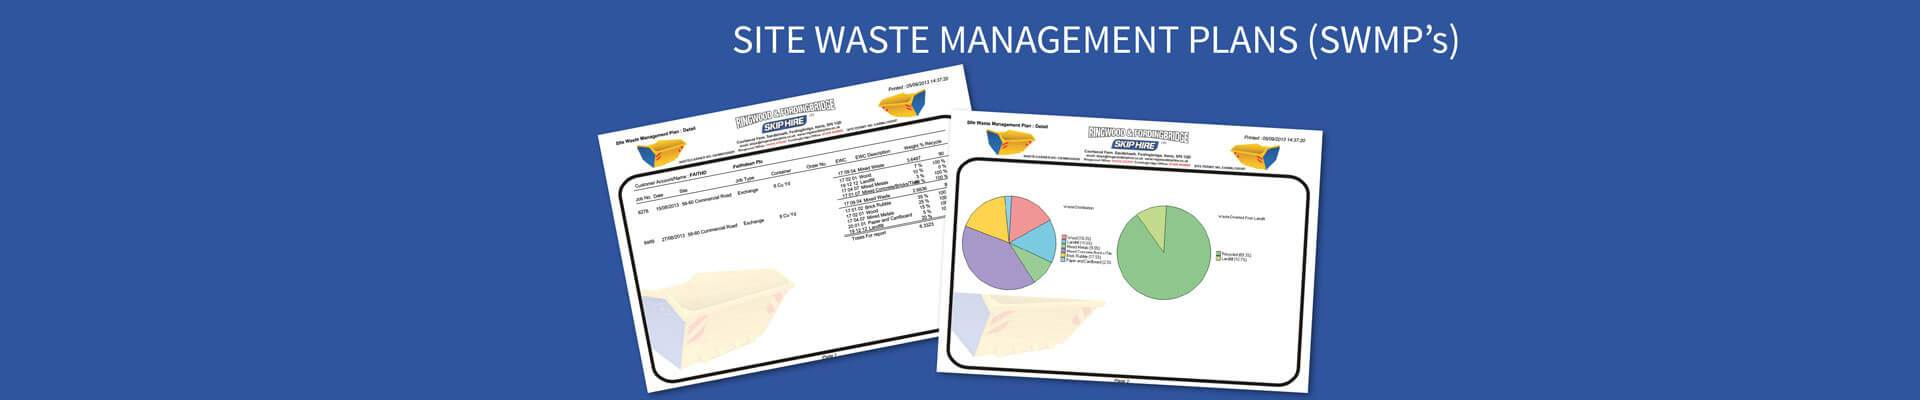 site waste management plan By law, construction projects with a budget of over £300,000 must have a site waste management plan (swmp) in order to detail how the project plans to manage and maintain construction materials in the interest of minimising waste.